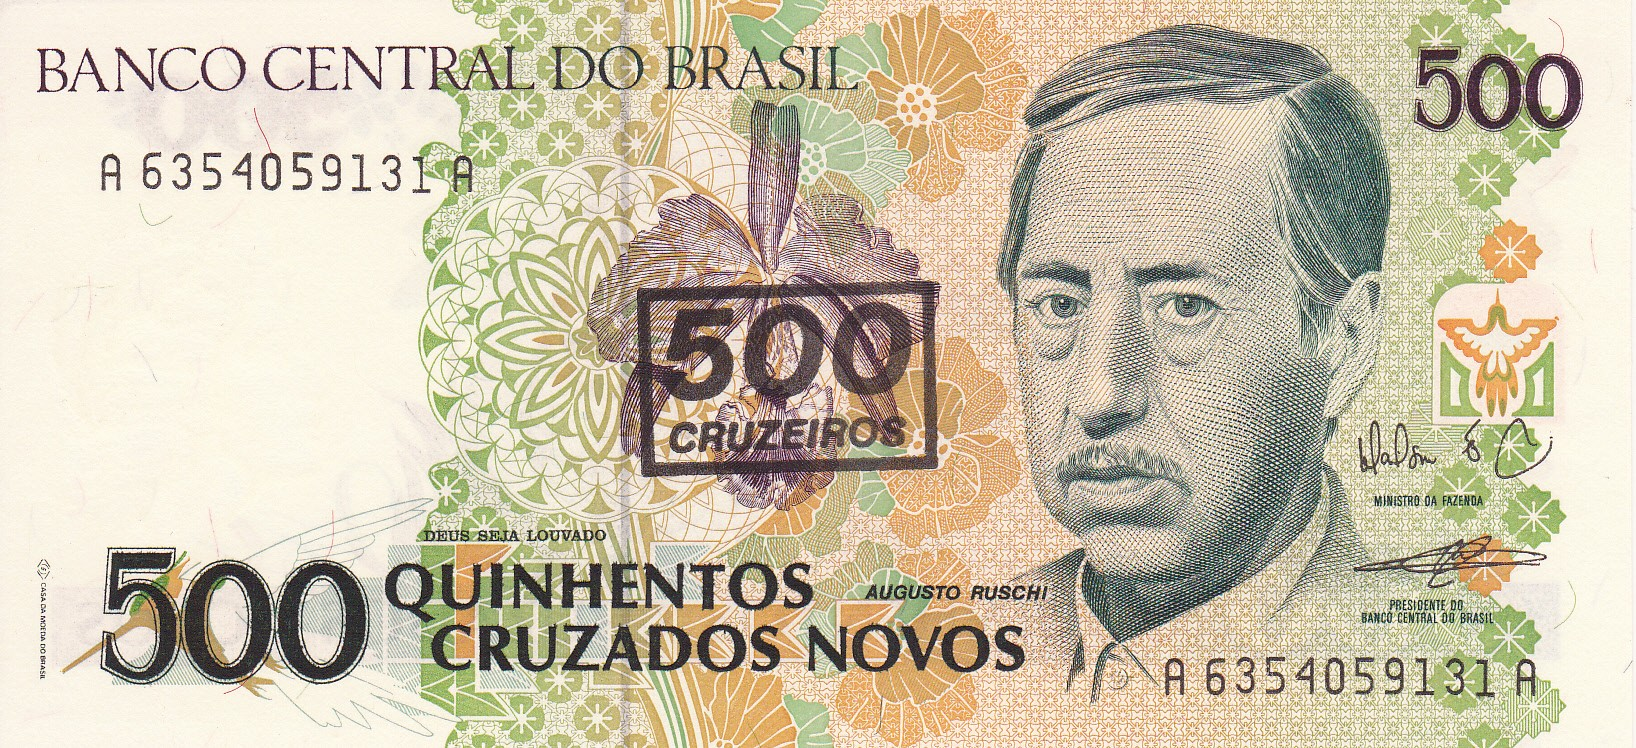 BANCO CENTRAL DO BRAZIL 1000 MIL CRUZADOS UNC Images - Frompo